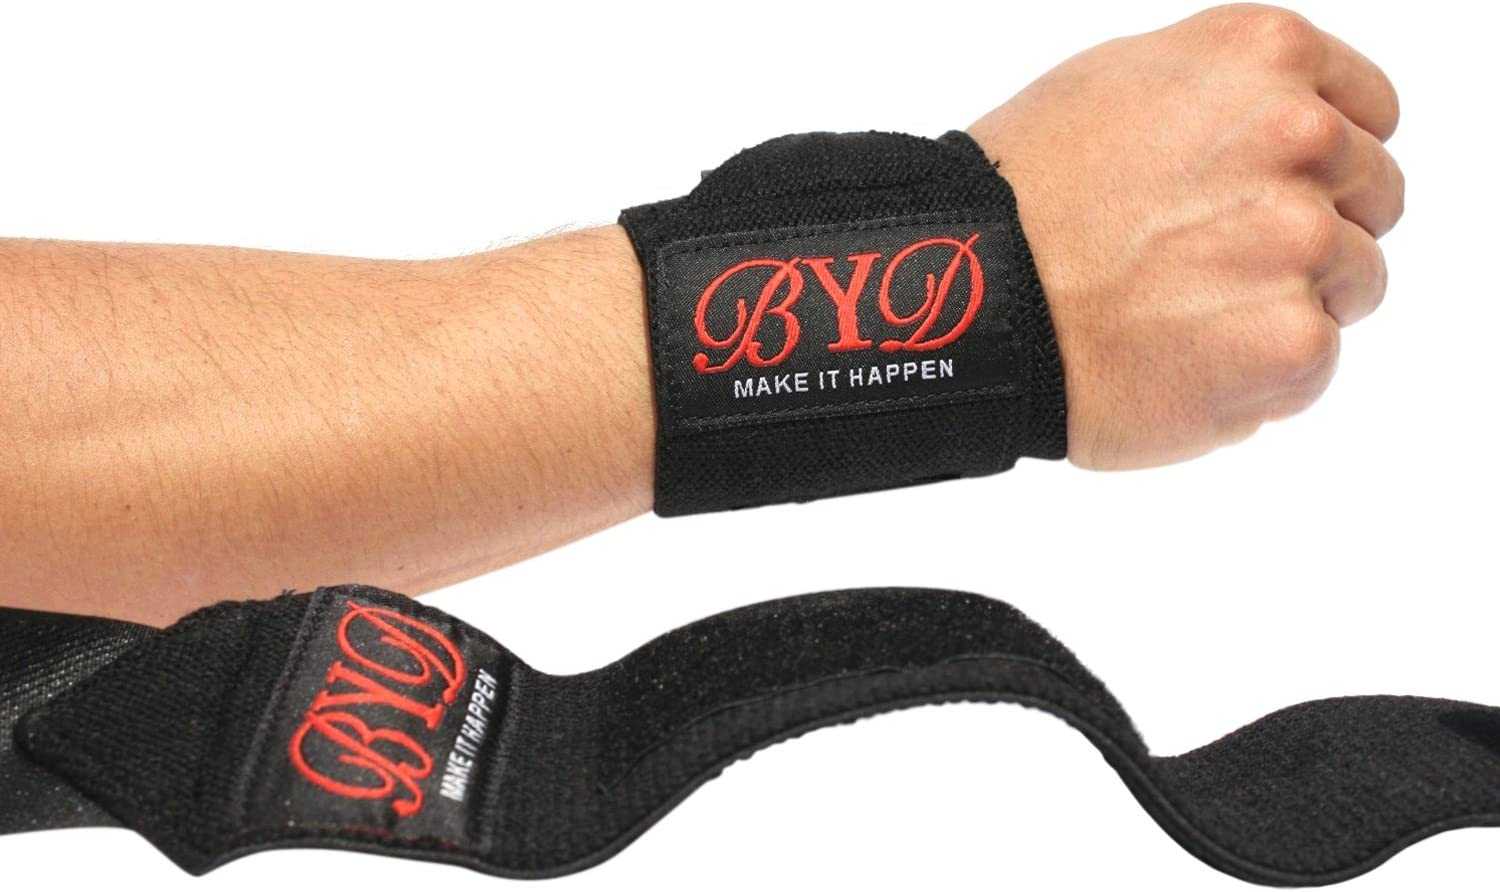 Strong Velcro Cross fit Gym Protection Heavy Duty Thumb Loops Avoid Injury And Protect Your Wrist /& Hands Wrist Support Wrap Pair Of Two 12 for Weight Training Powerlifting Bodybuilding